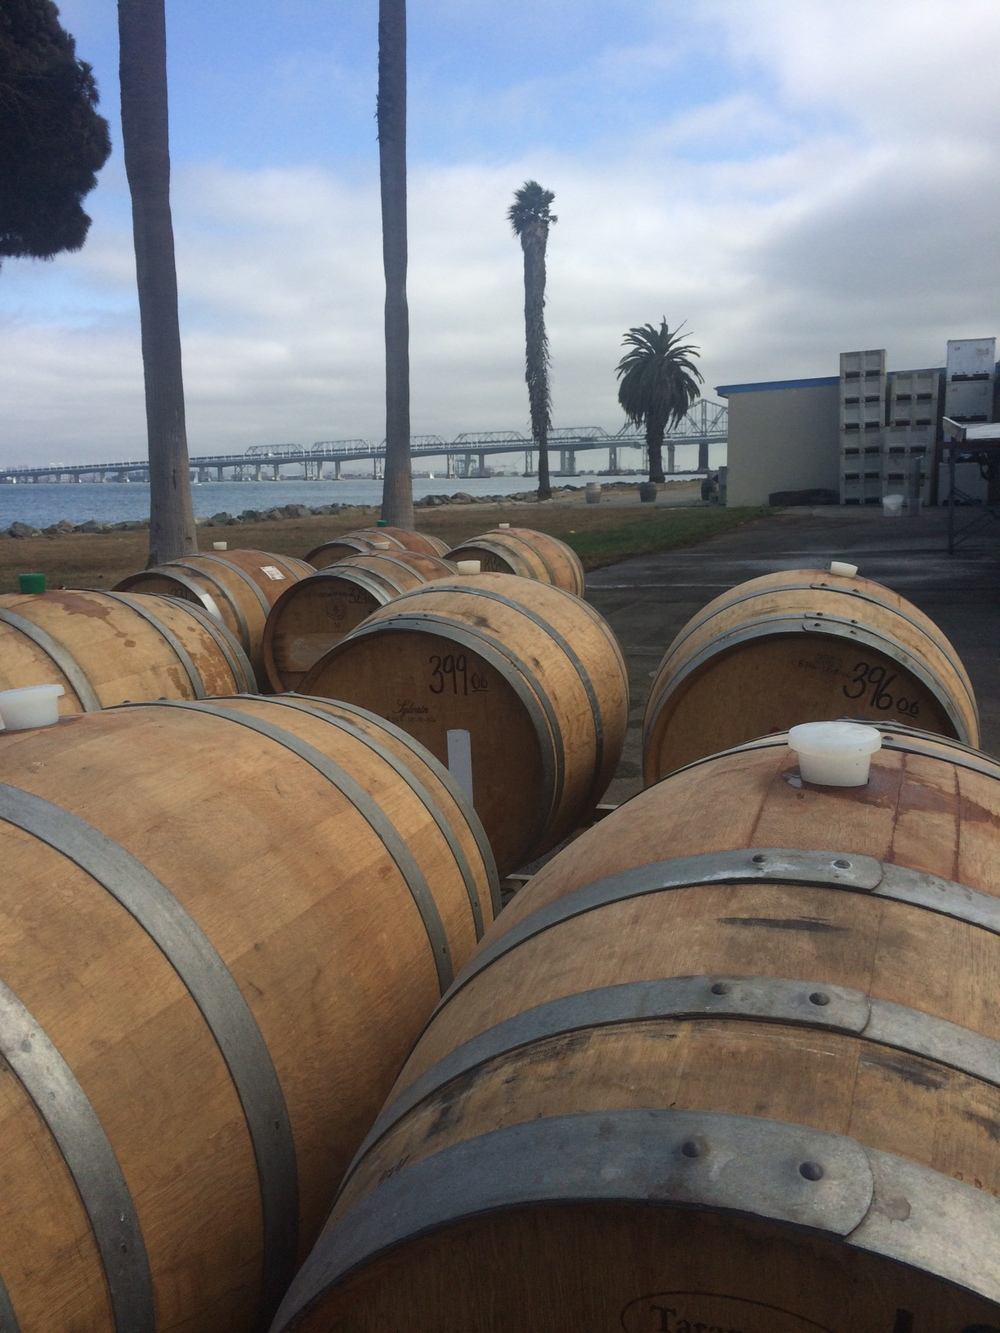 The last empty barrels of the year, waiting to be filled with the wonderful wines of the 2014 vintage